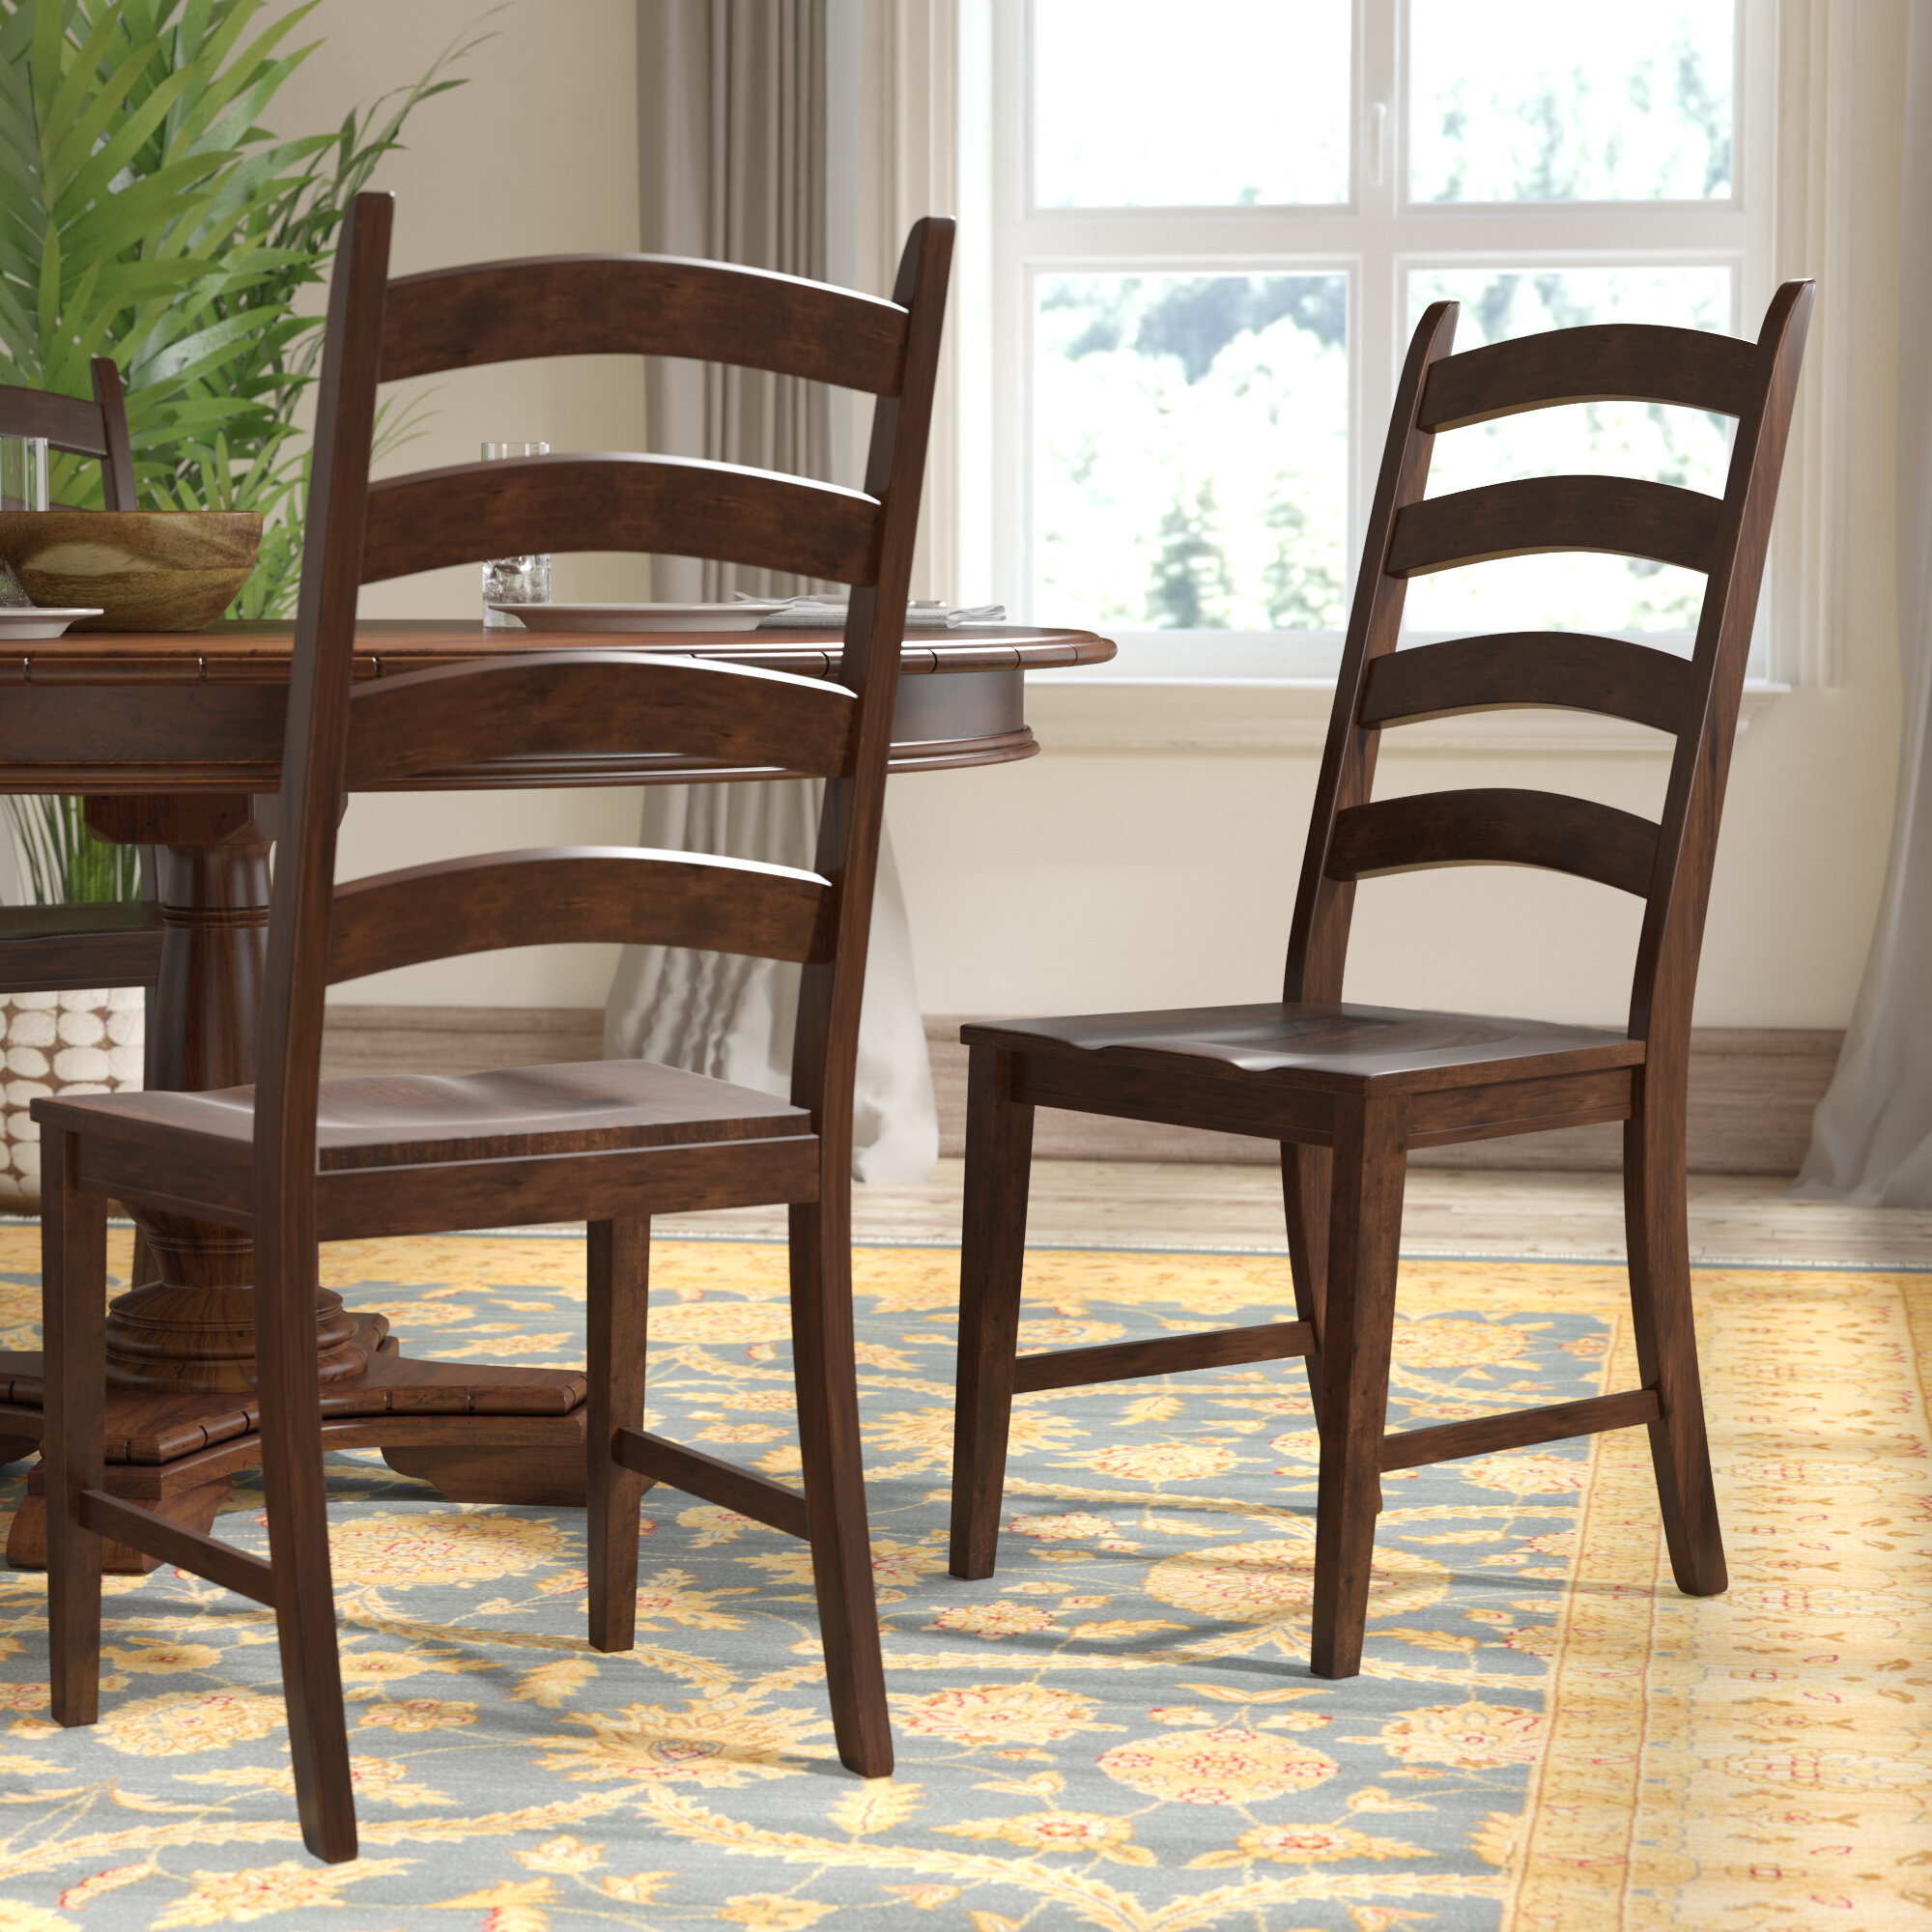 Charmant World Menagerie Birchley Ladderback Solid Wood Dining Chair U0026 Reviews |  Wayfair